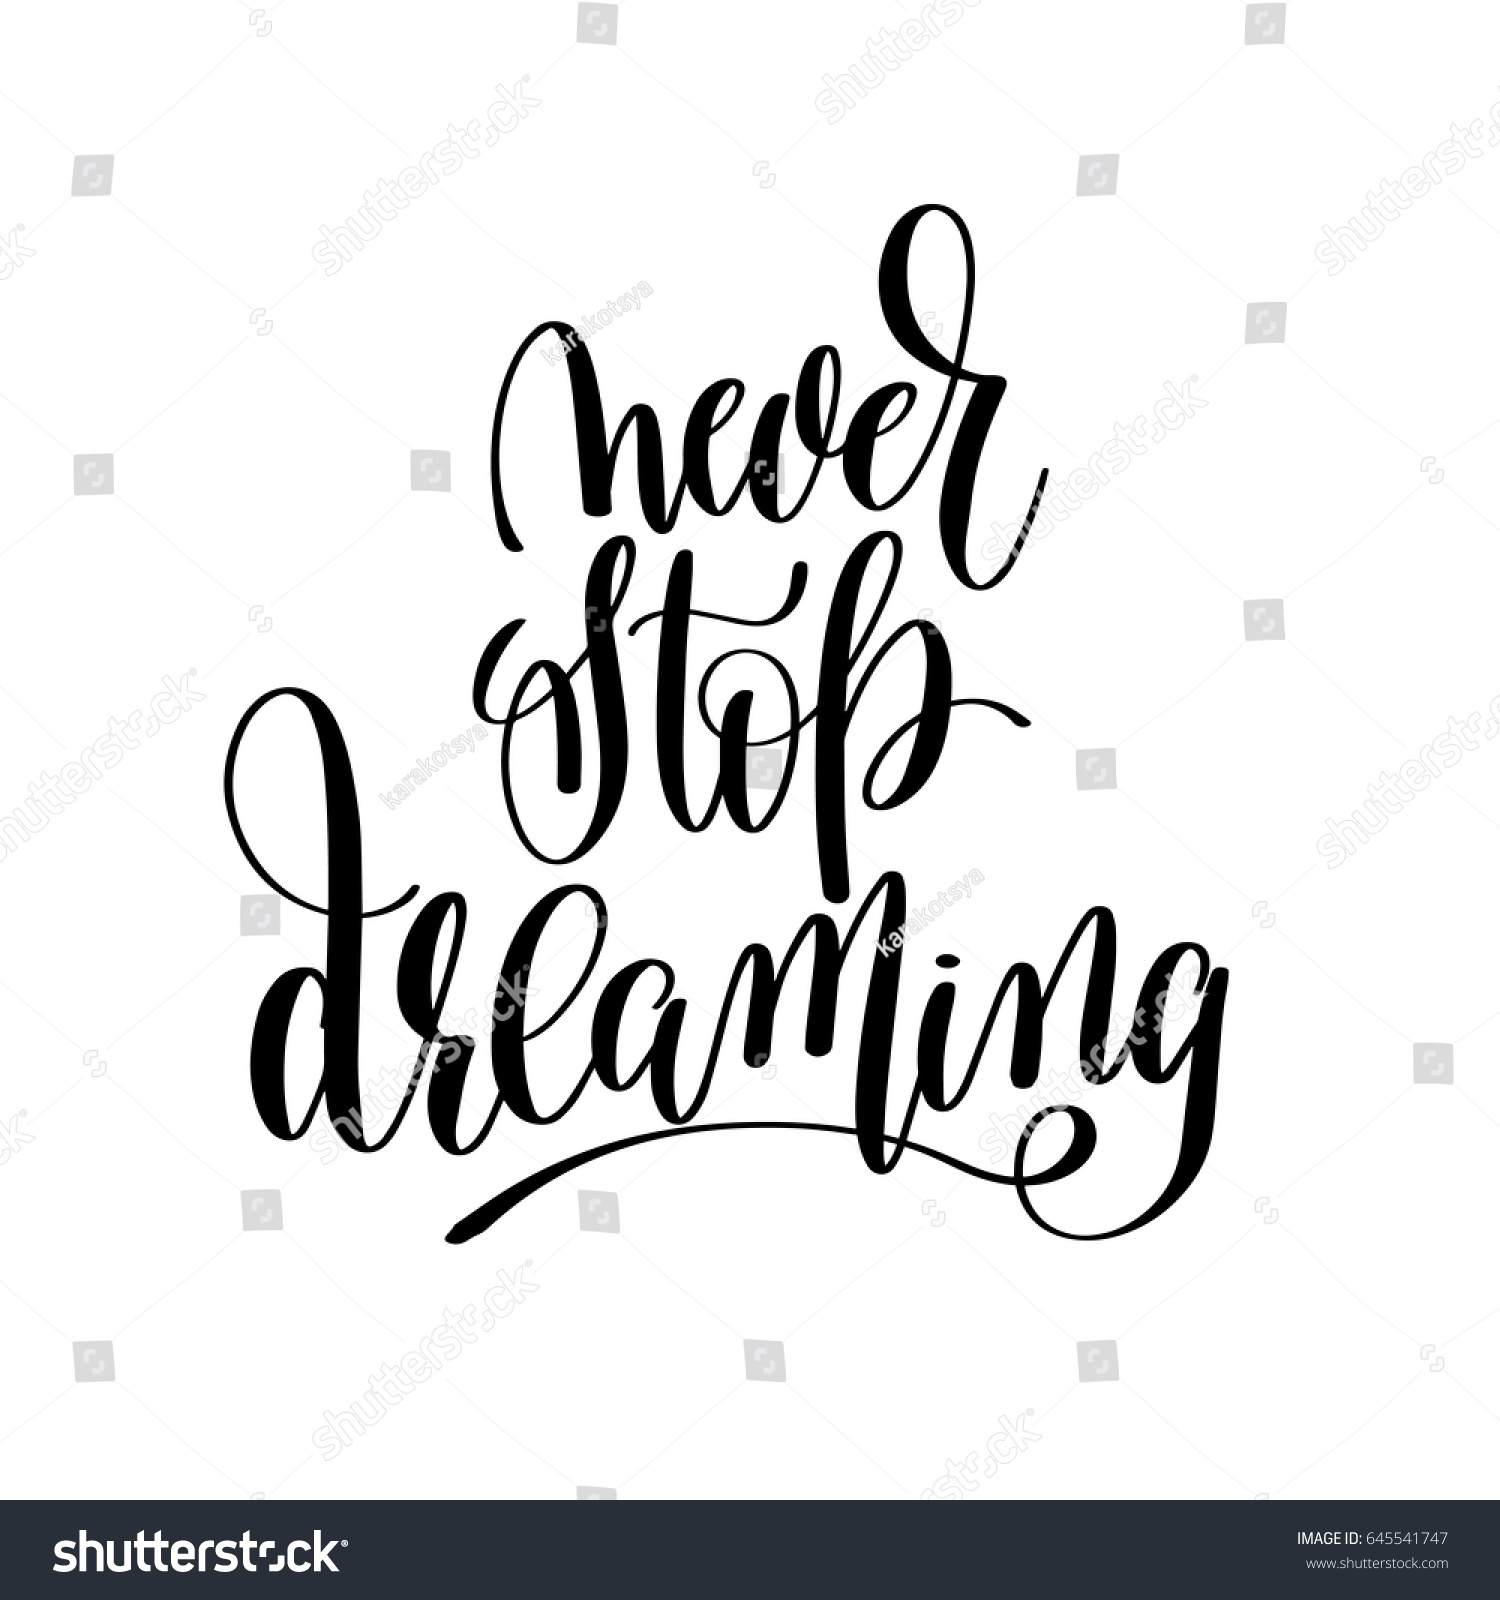 Poster design drawing - Never Stop Dreaming Black And White Ink Hand Lettering Inscription About Life To Poster Design